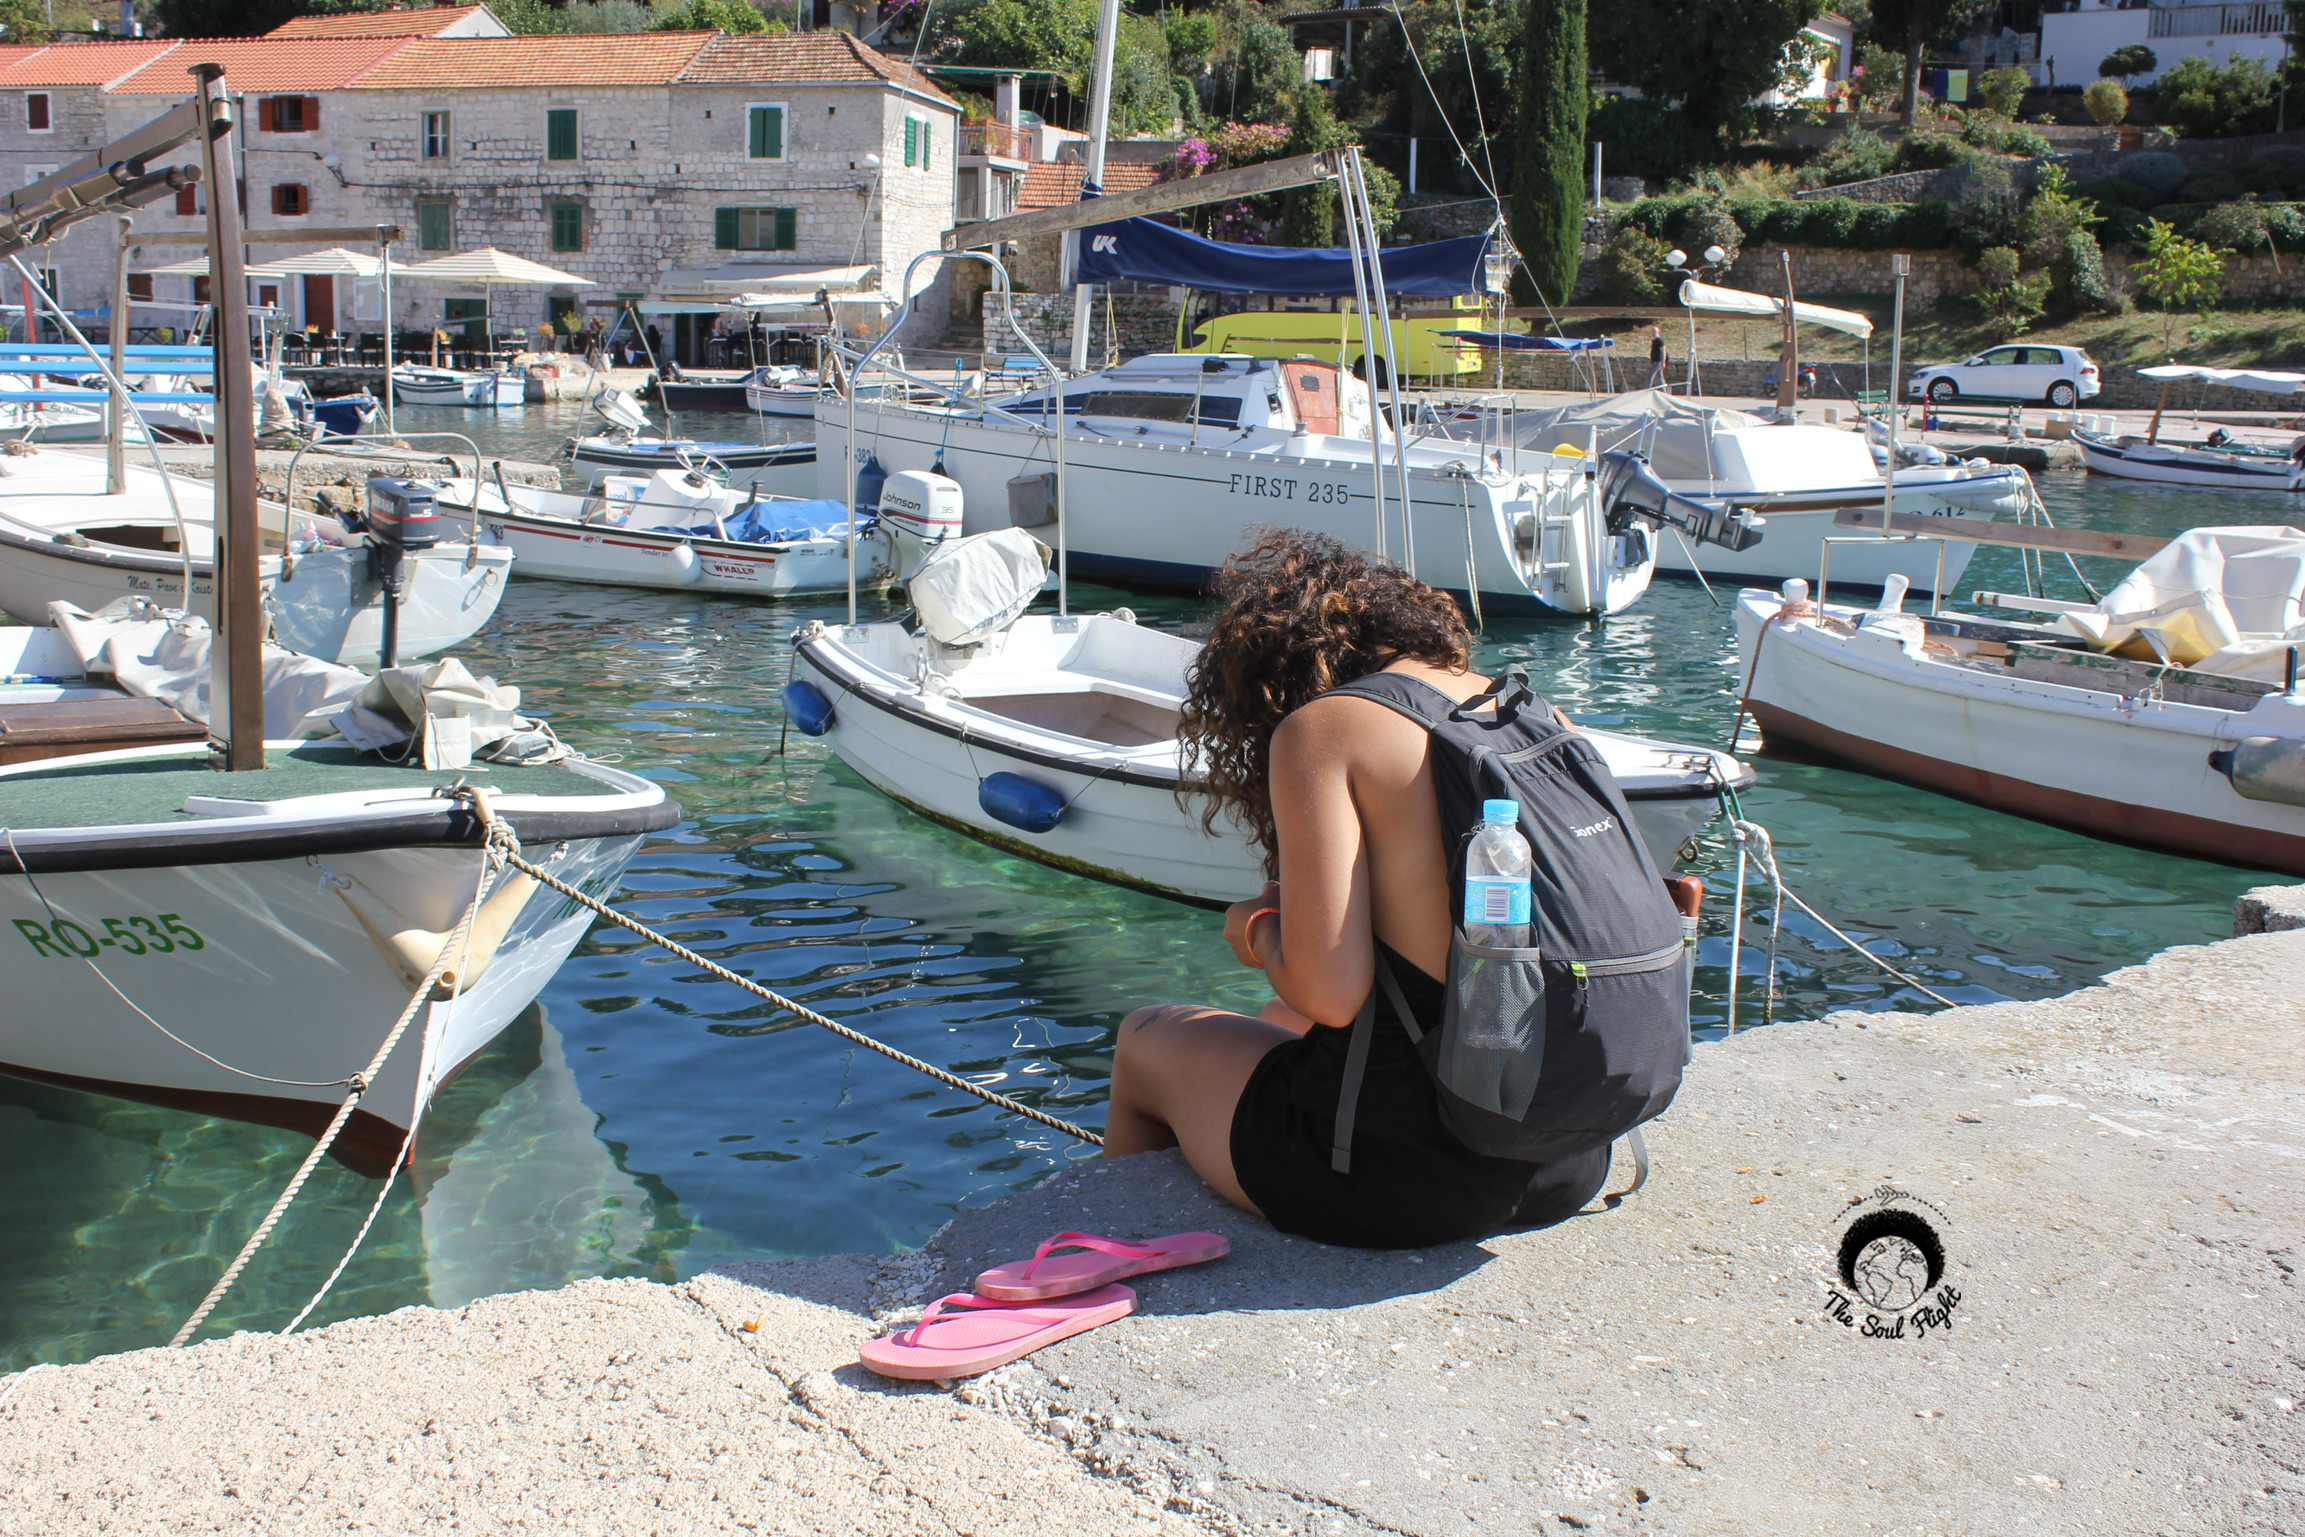 Photo by Shelby Halpin - Contemplating the fear - Split, Croatia